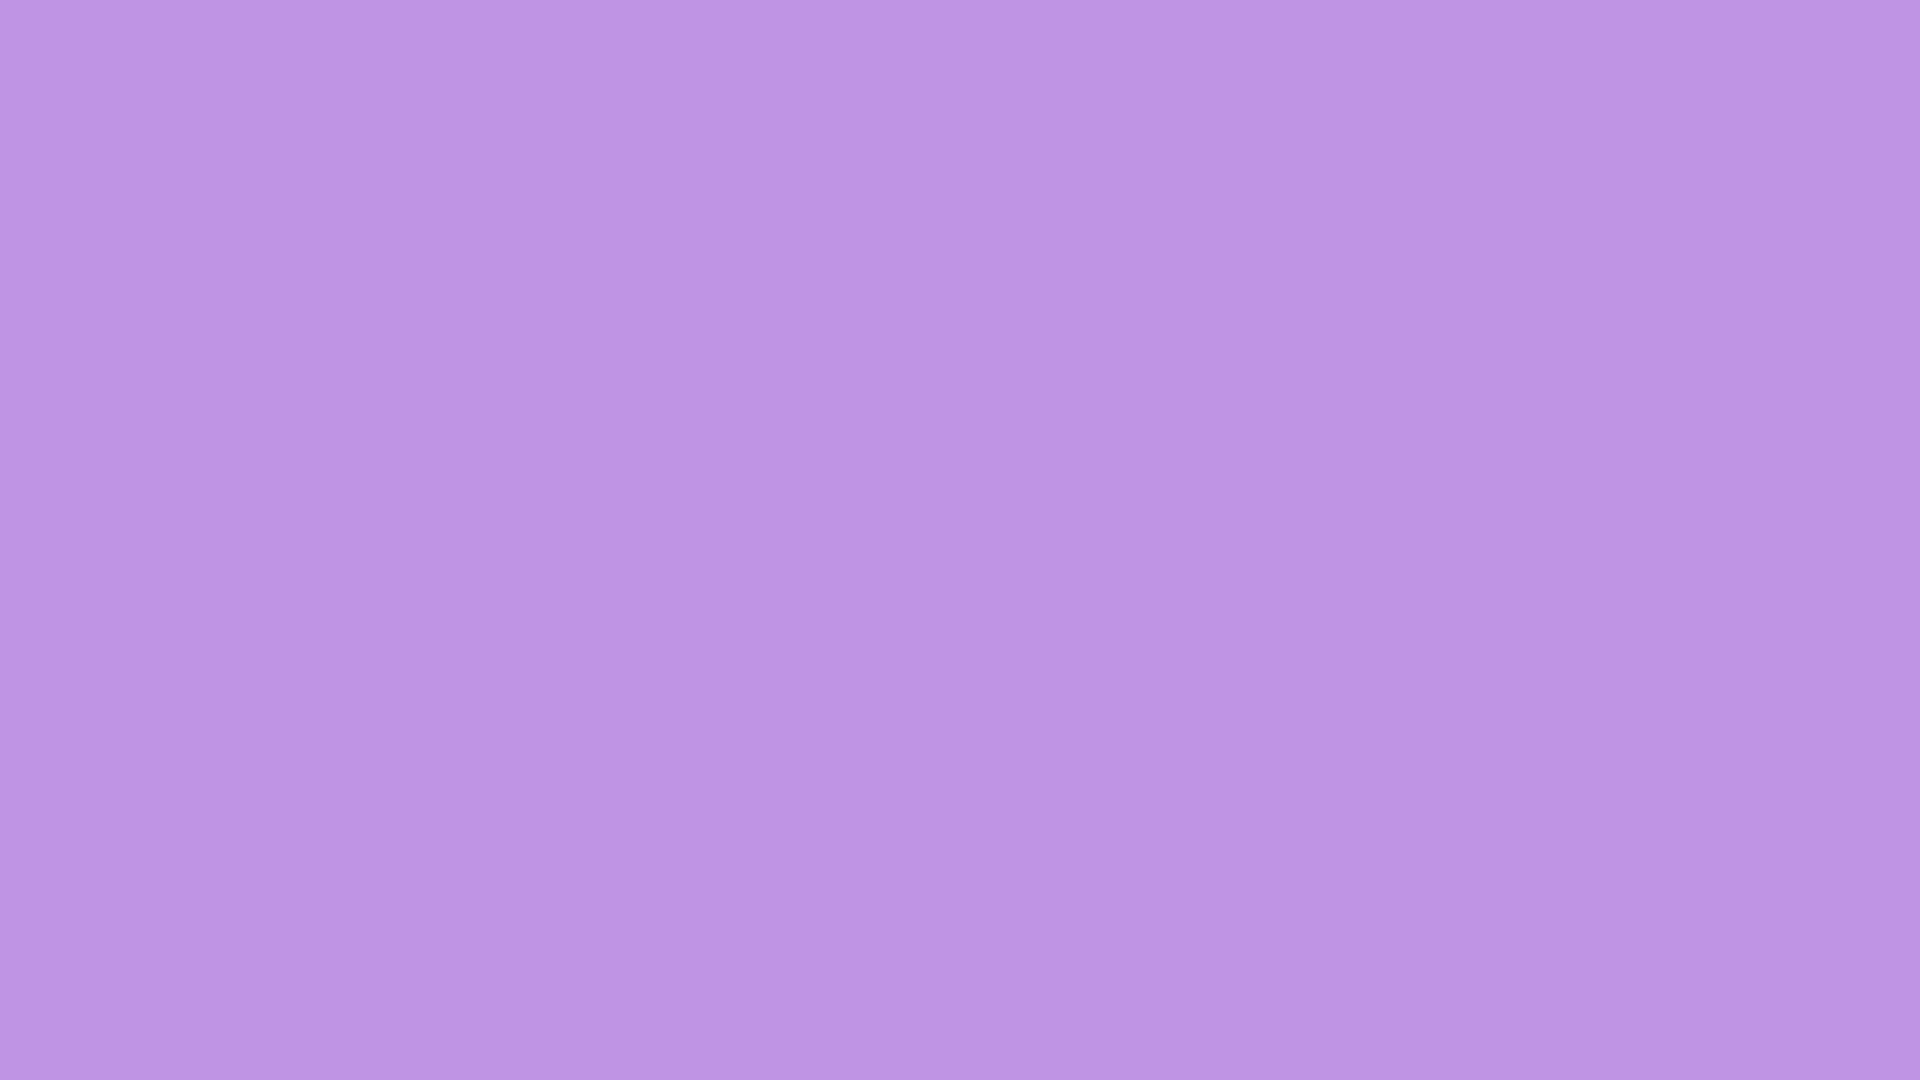 1920x1080 Bright Lavender Solid Color Background